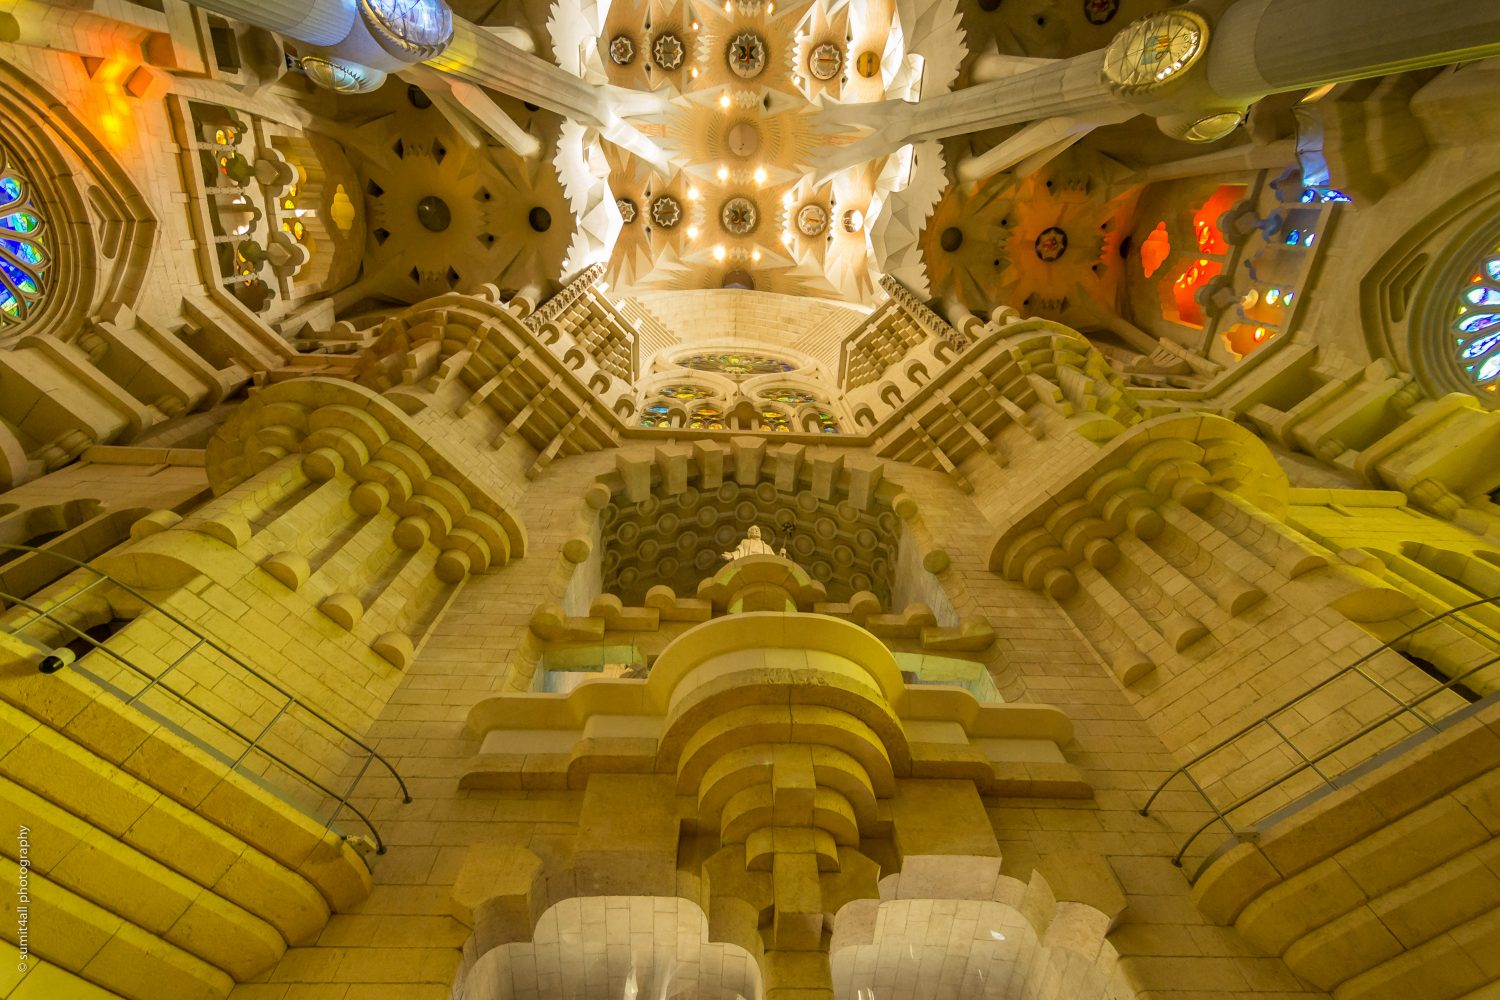 The inside of the Sagrada Familia with the remarkable architecture of Gaudi in Barcelona Spain